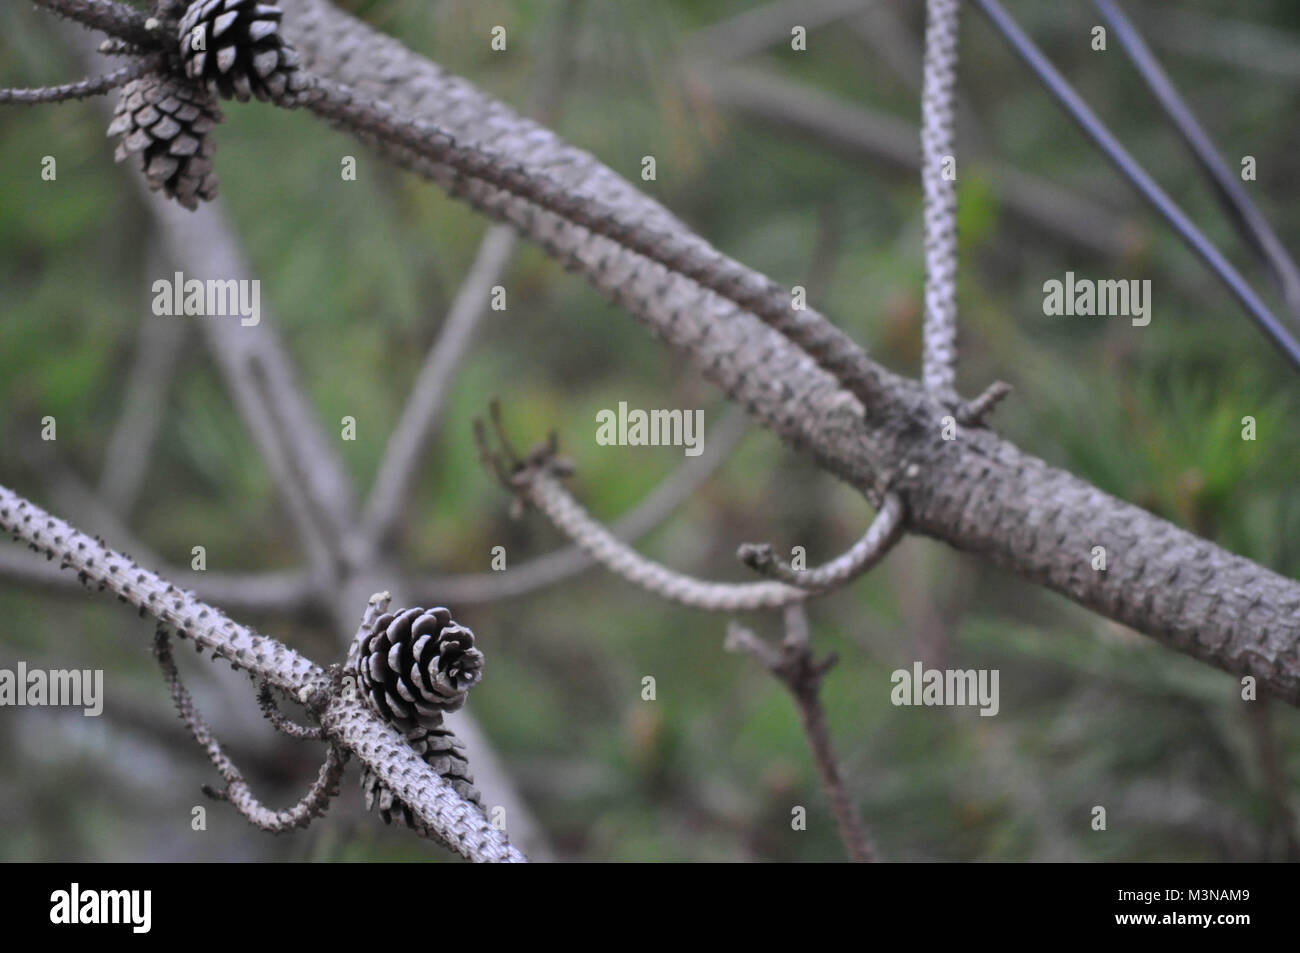 Pinecones in a Pine Tree - Stock Image